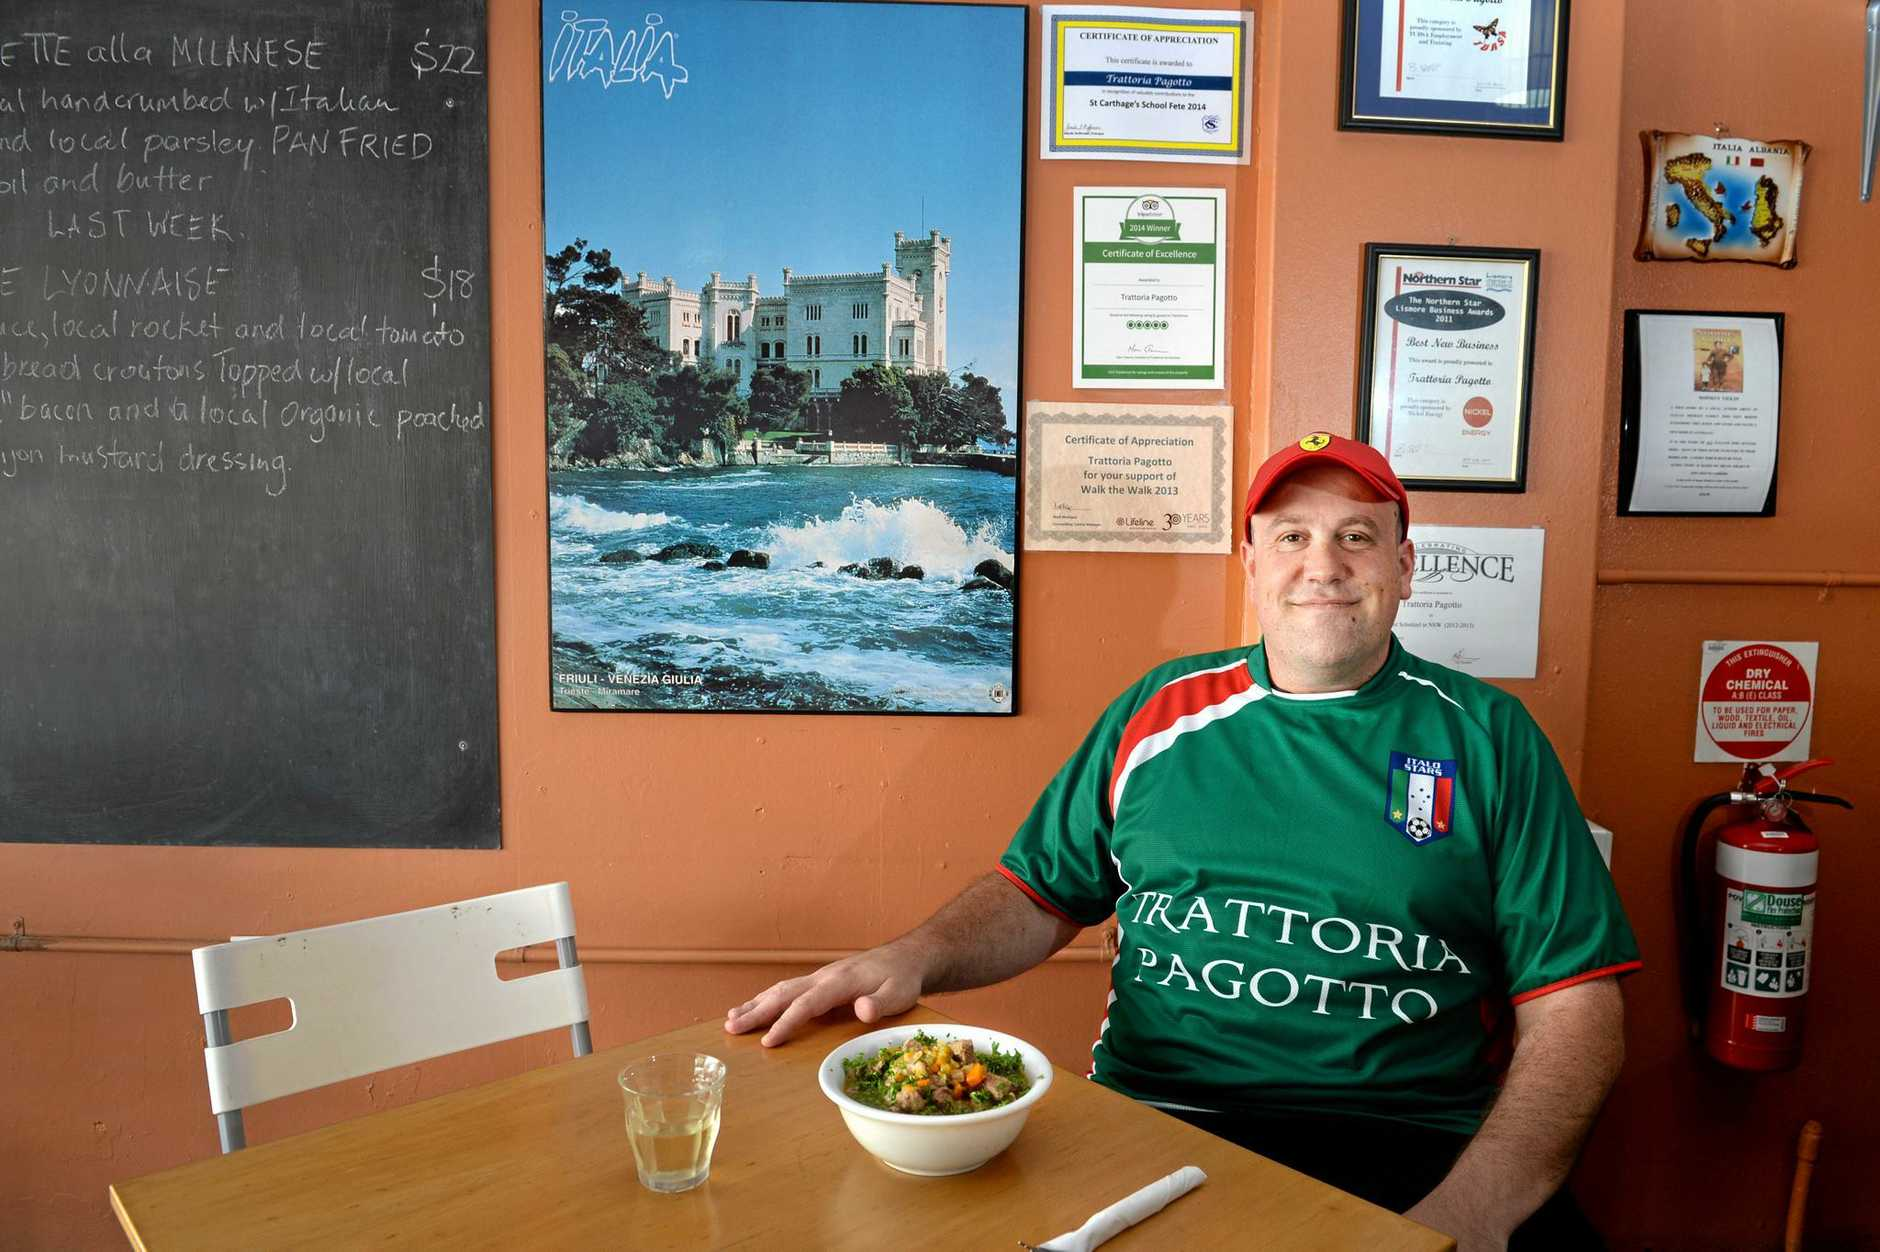 Simon Pagotto, of Trattoria Pagotto in Lismore. The Italian restaurant was one of the most highly rated takeaway places in the region.